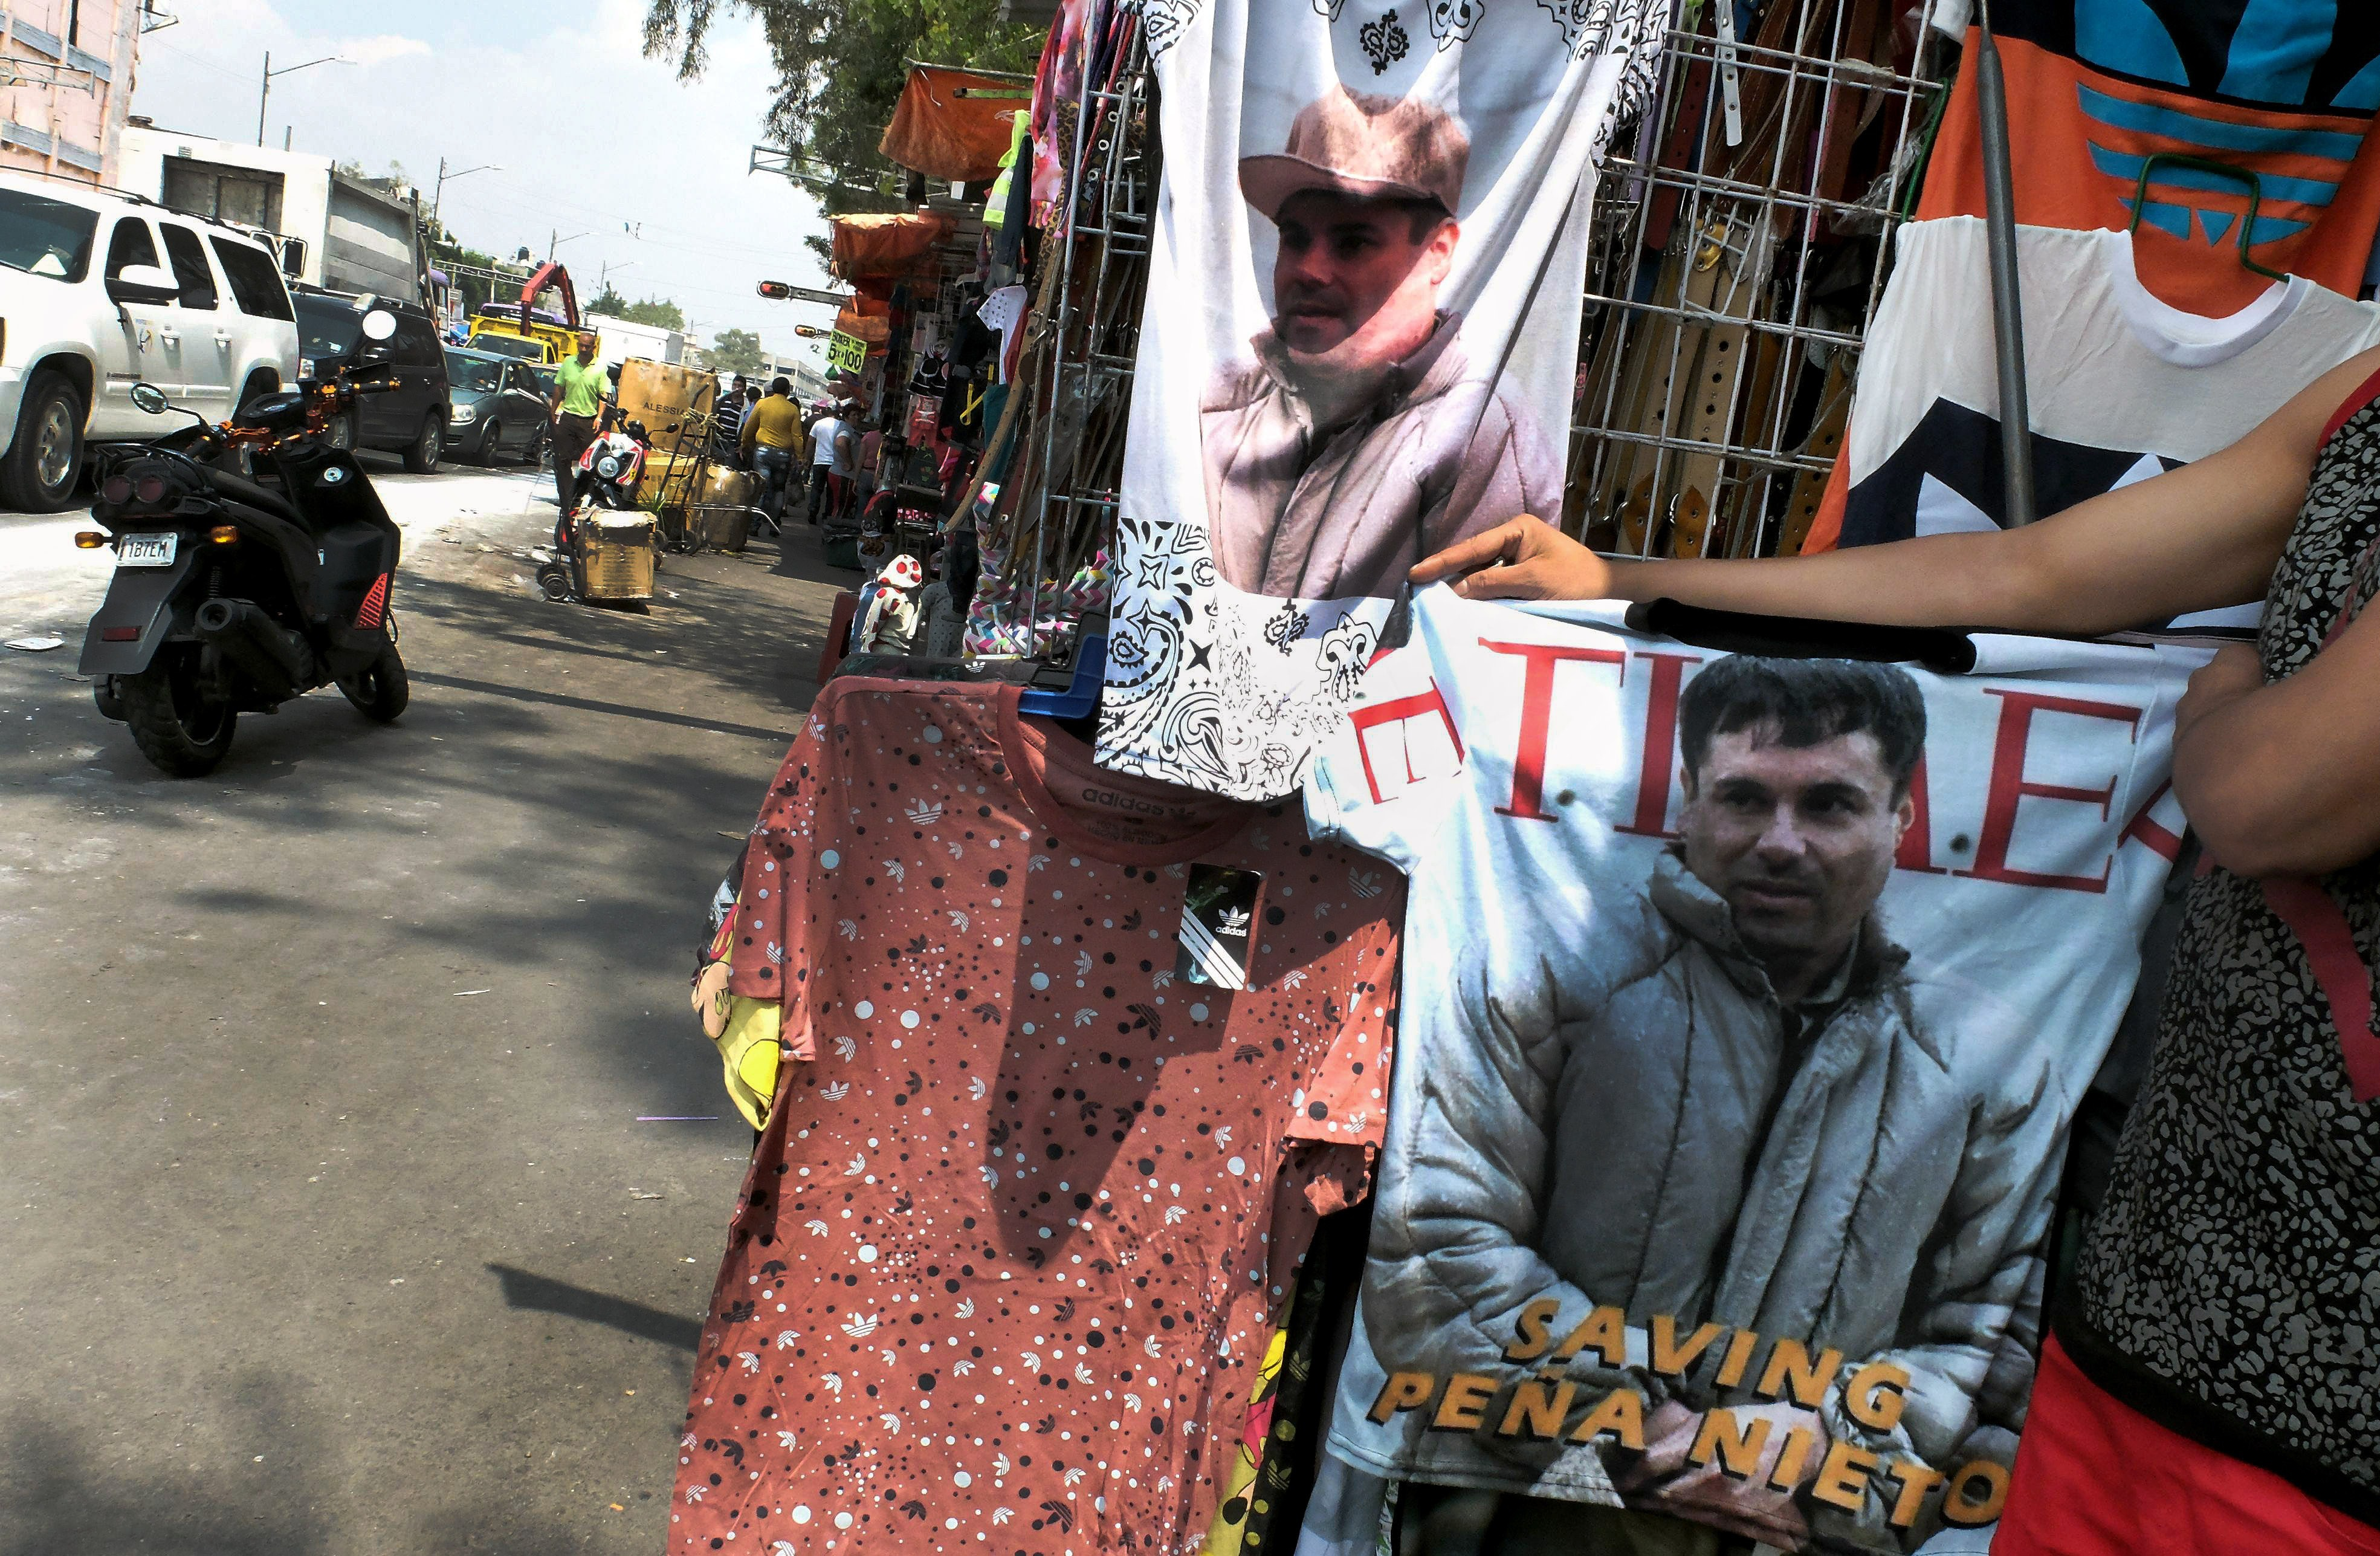 A vendor shows a t-shirt with the face of Joaquin  El Chapo  Guzman for sale  in Mexico City on July 20, 2015.